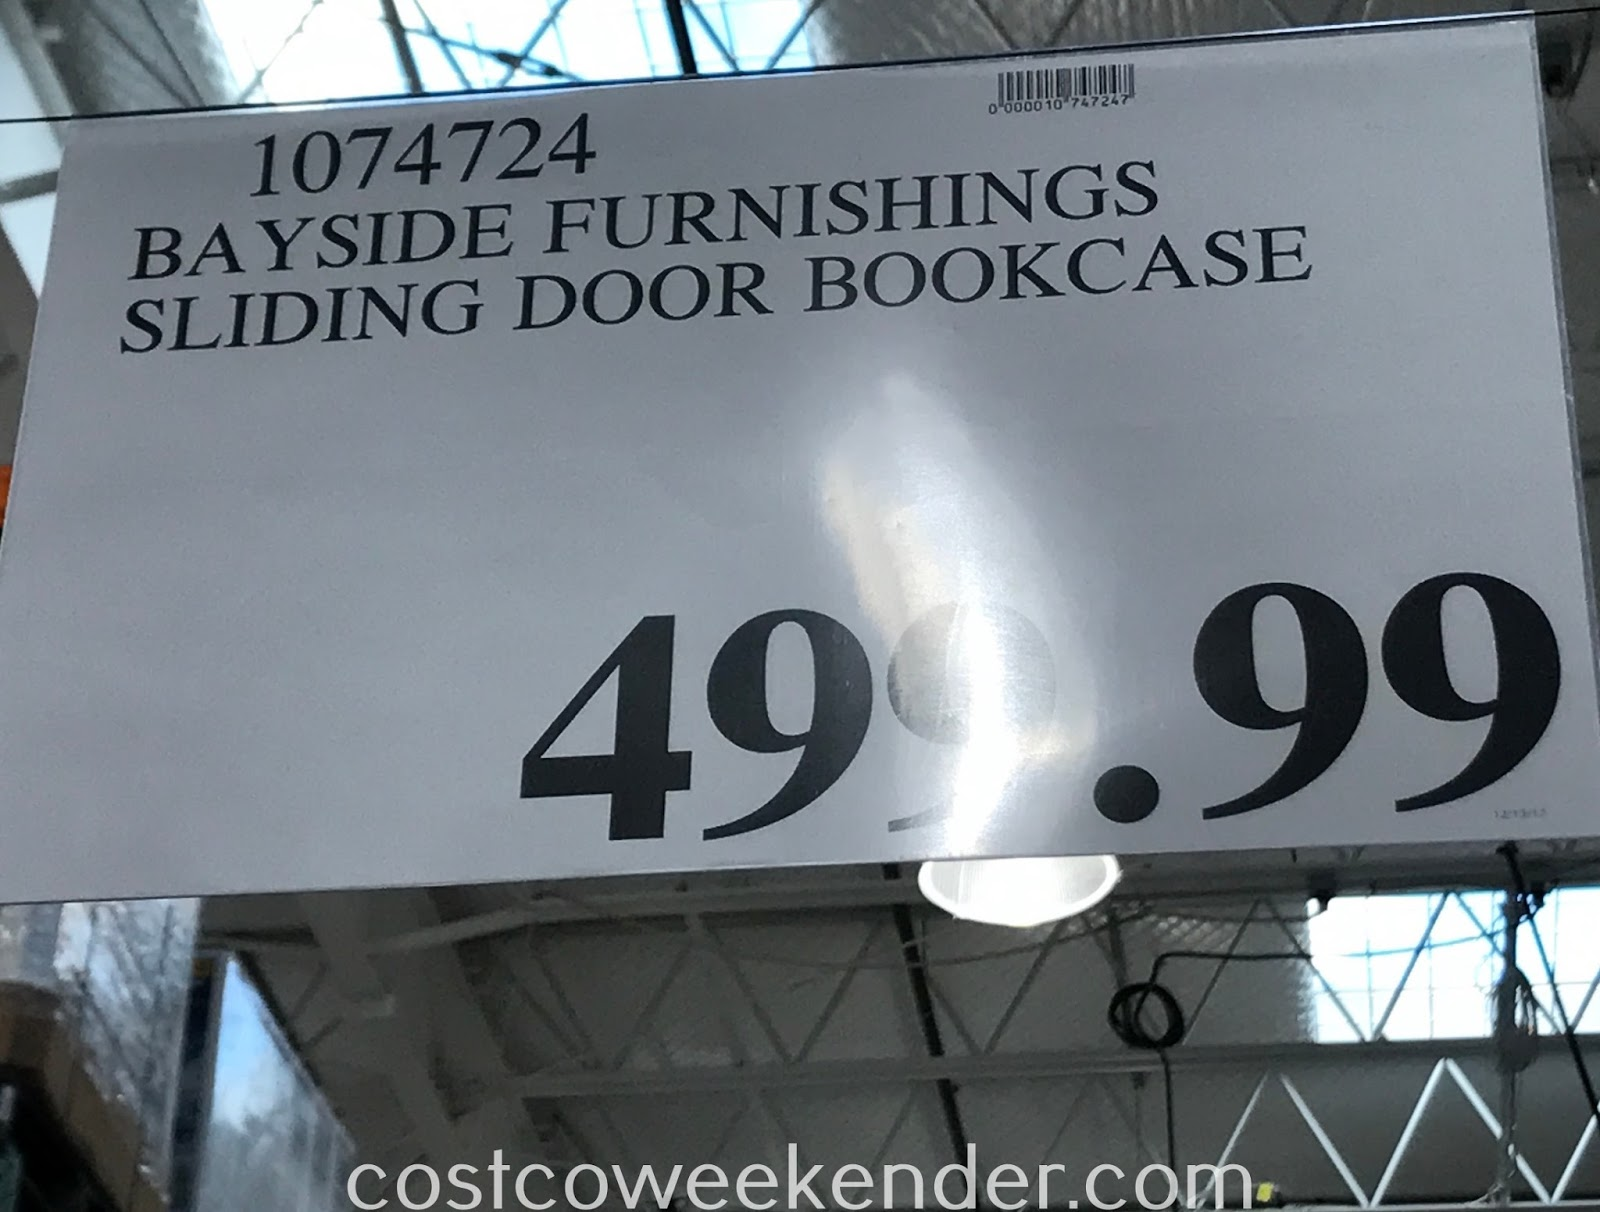 Deal for the Bayside Furnishings Sliding Door Bookcase at Costco